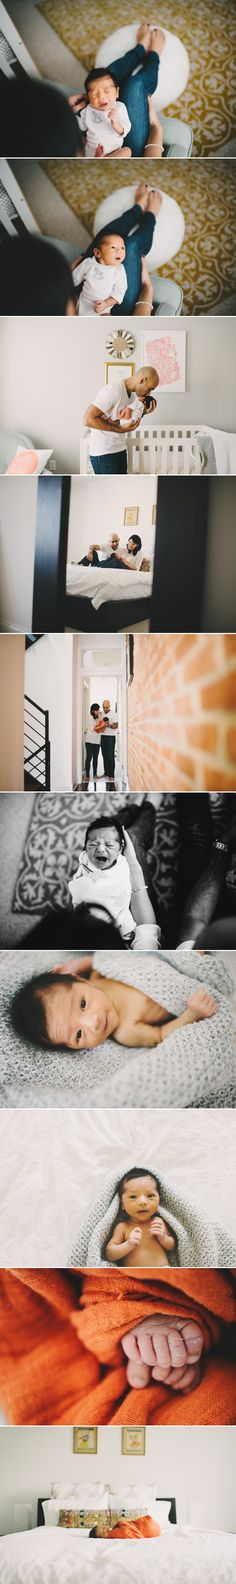 Documentary Style | Lifestyle | Real Moments | Newborn and Family In-Home Session